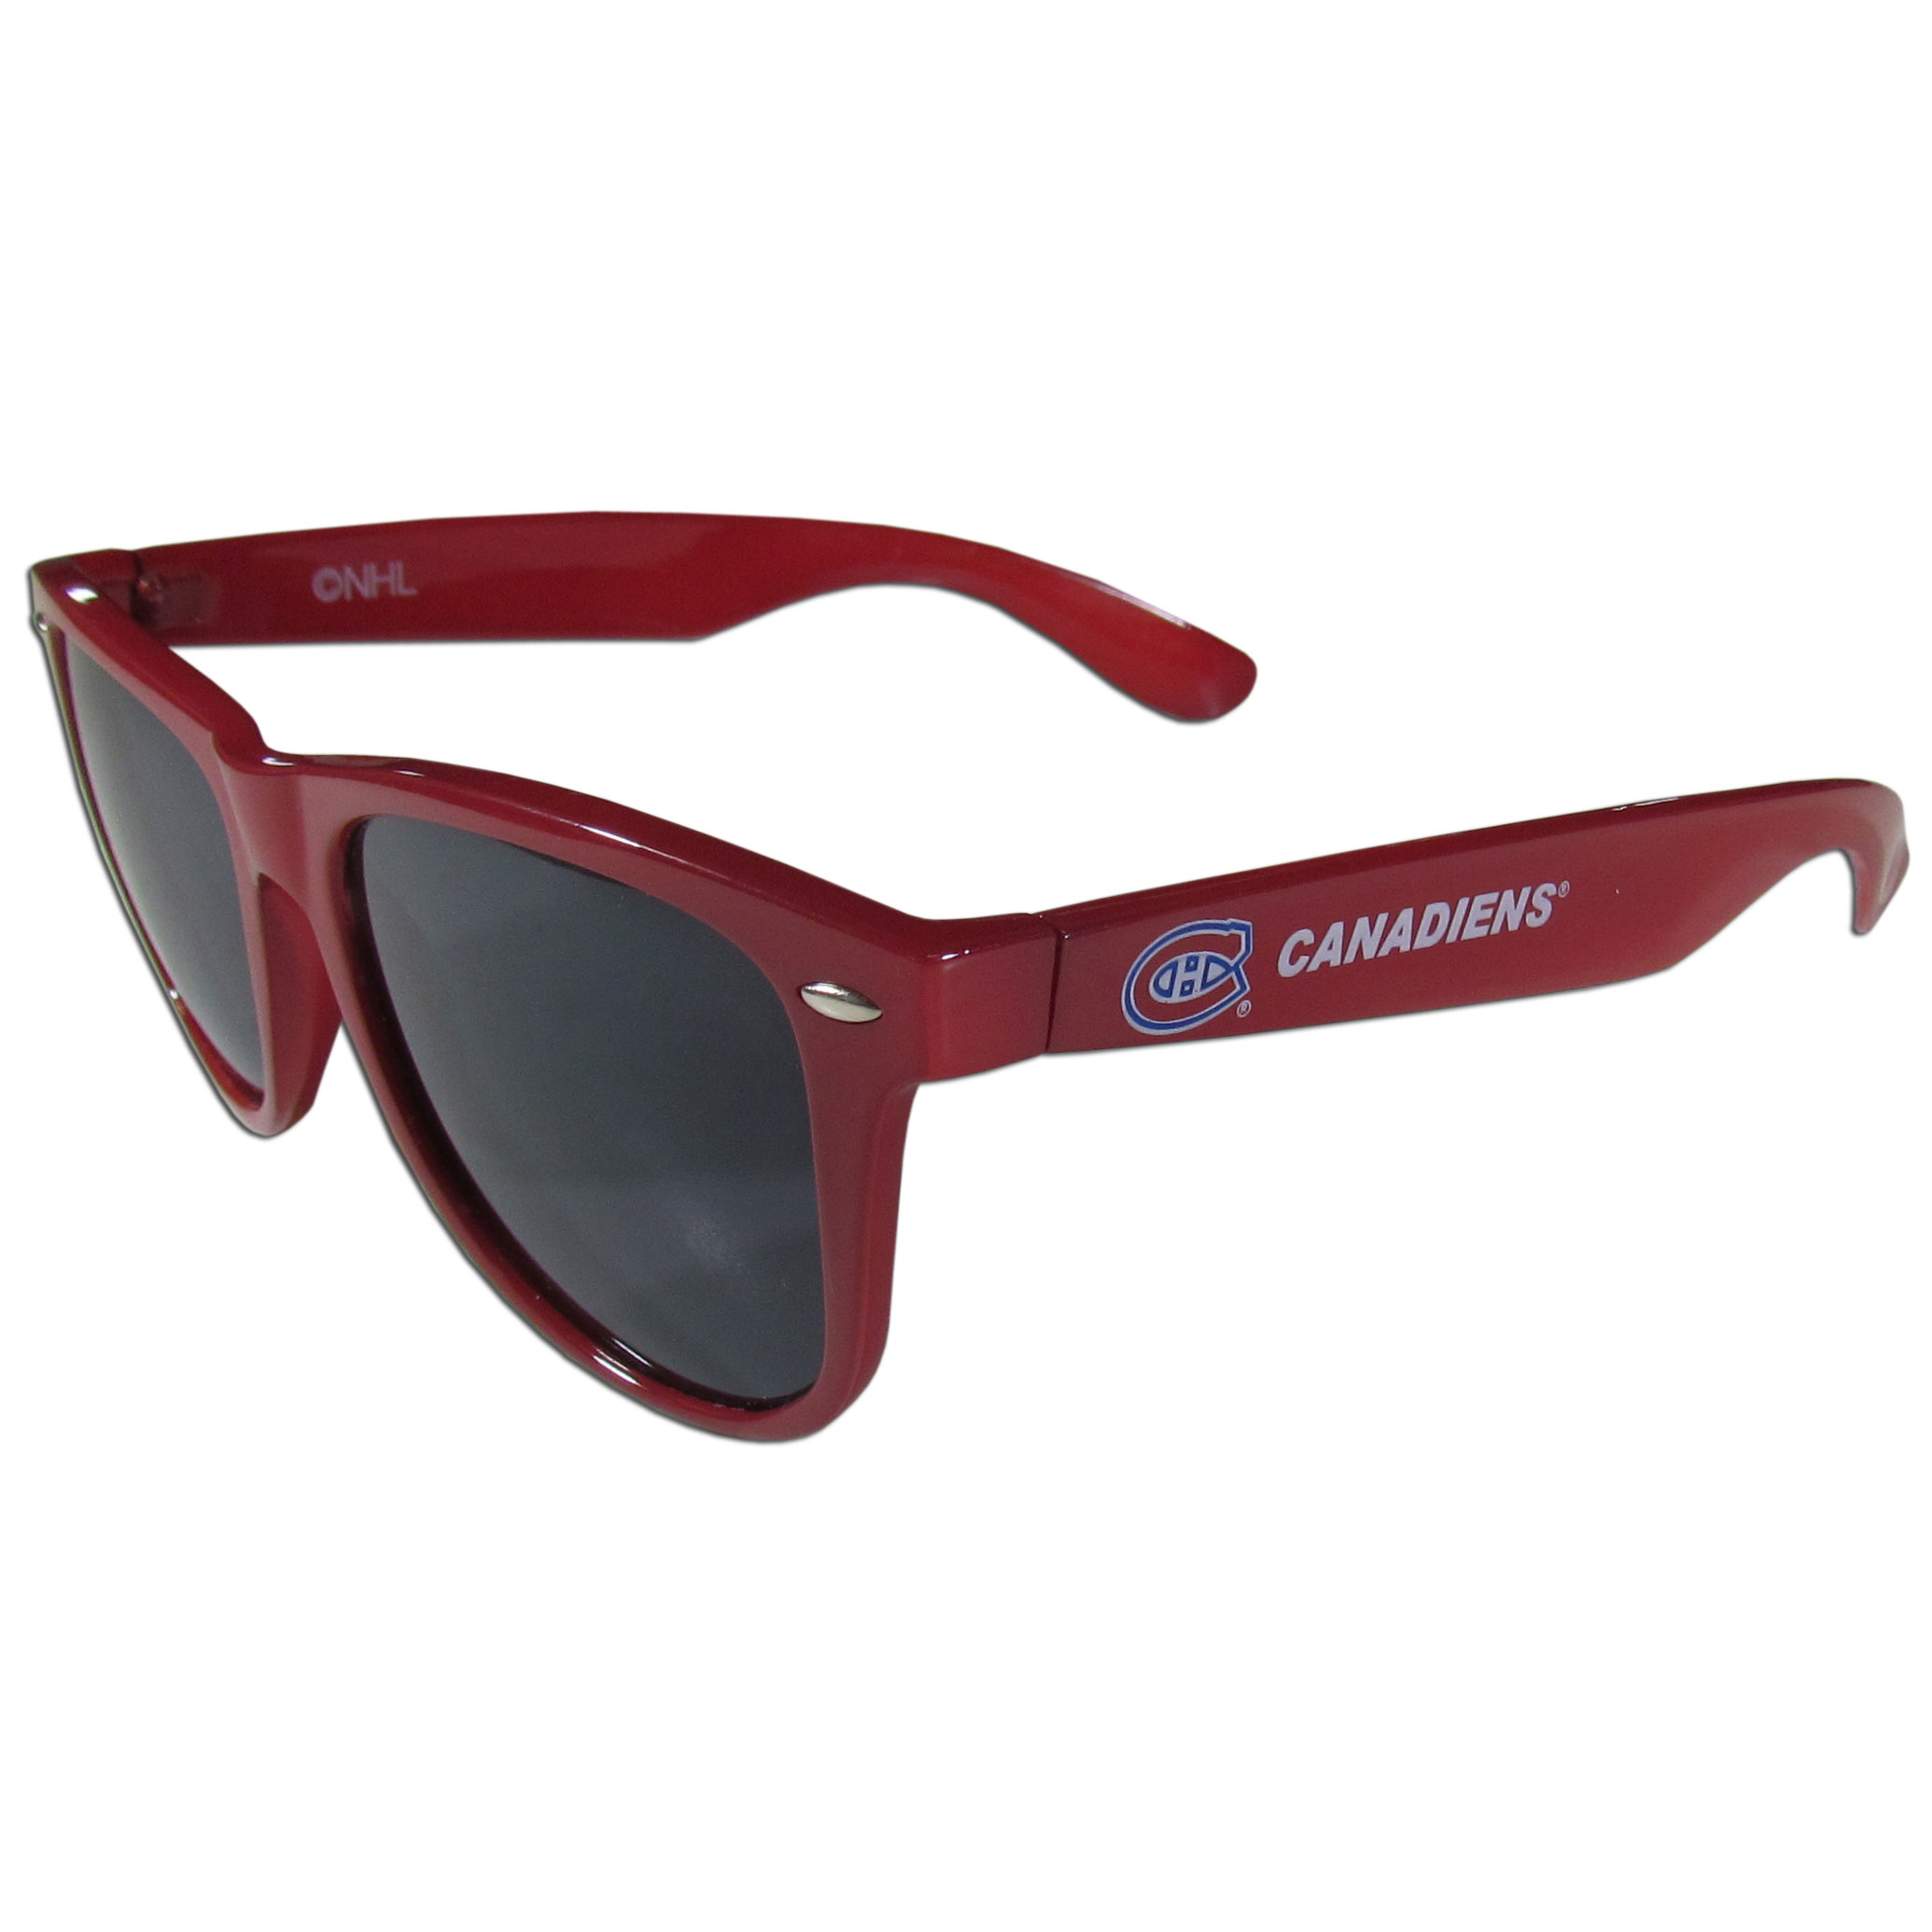 Montreal Canadiens® Beachfarer Sunglasses - Our beachfarer sunglass feature the Montreal Canadiens® logo and name silk screened on the arm of these great retro glasses. 400 UVA protection.